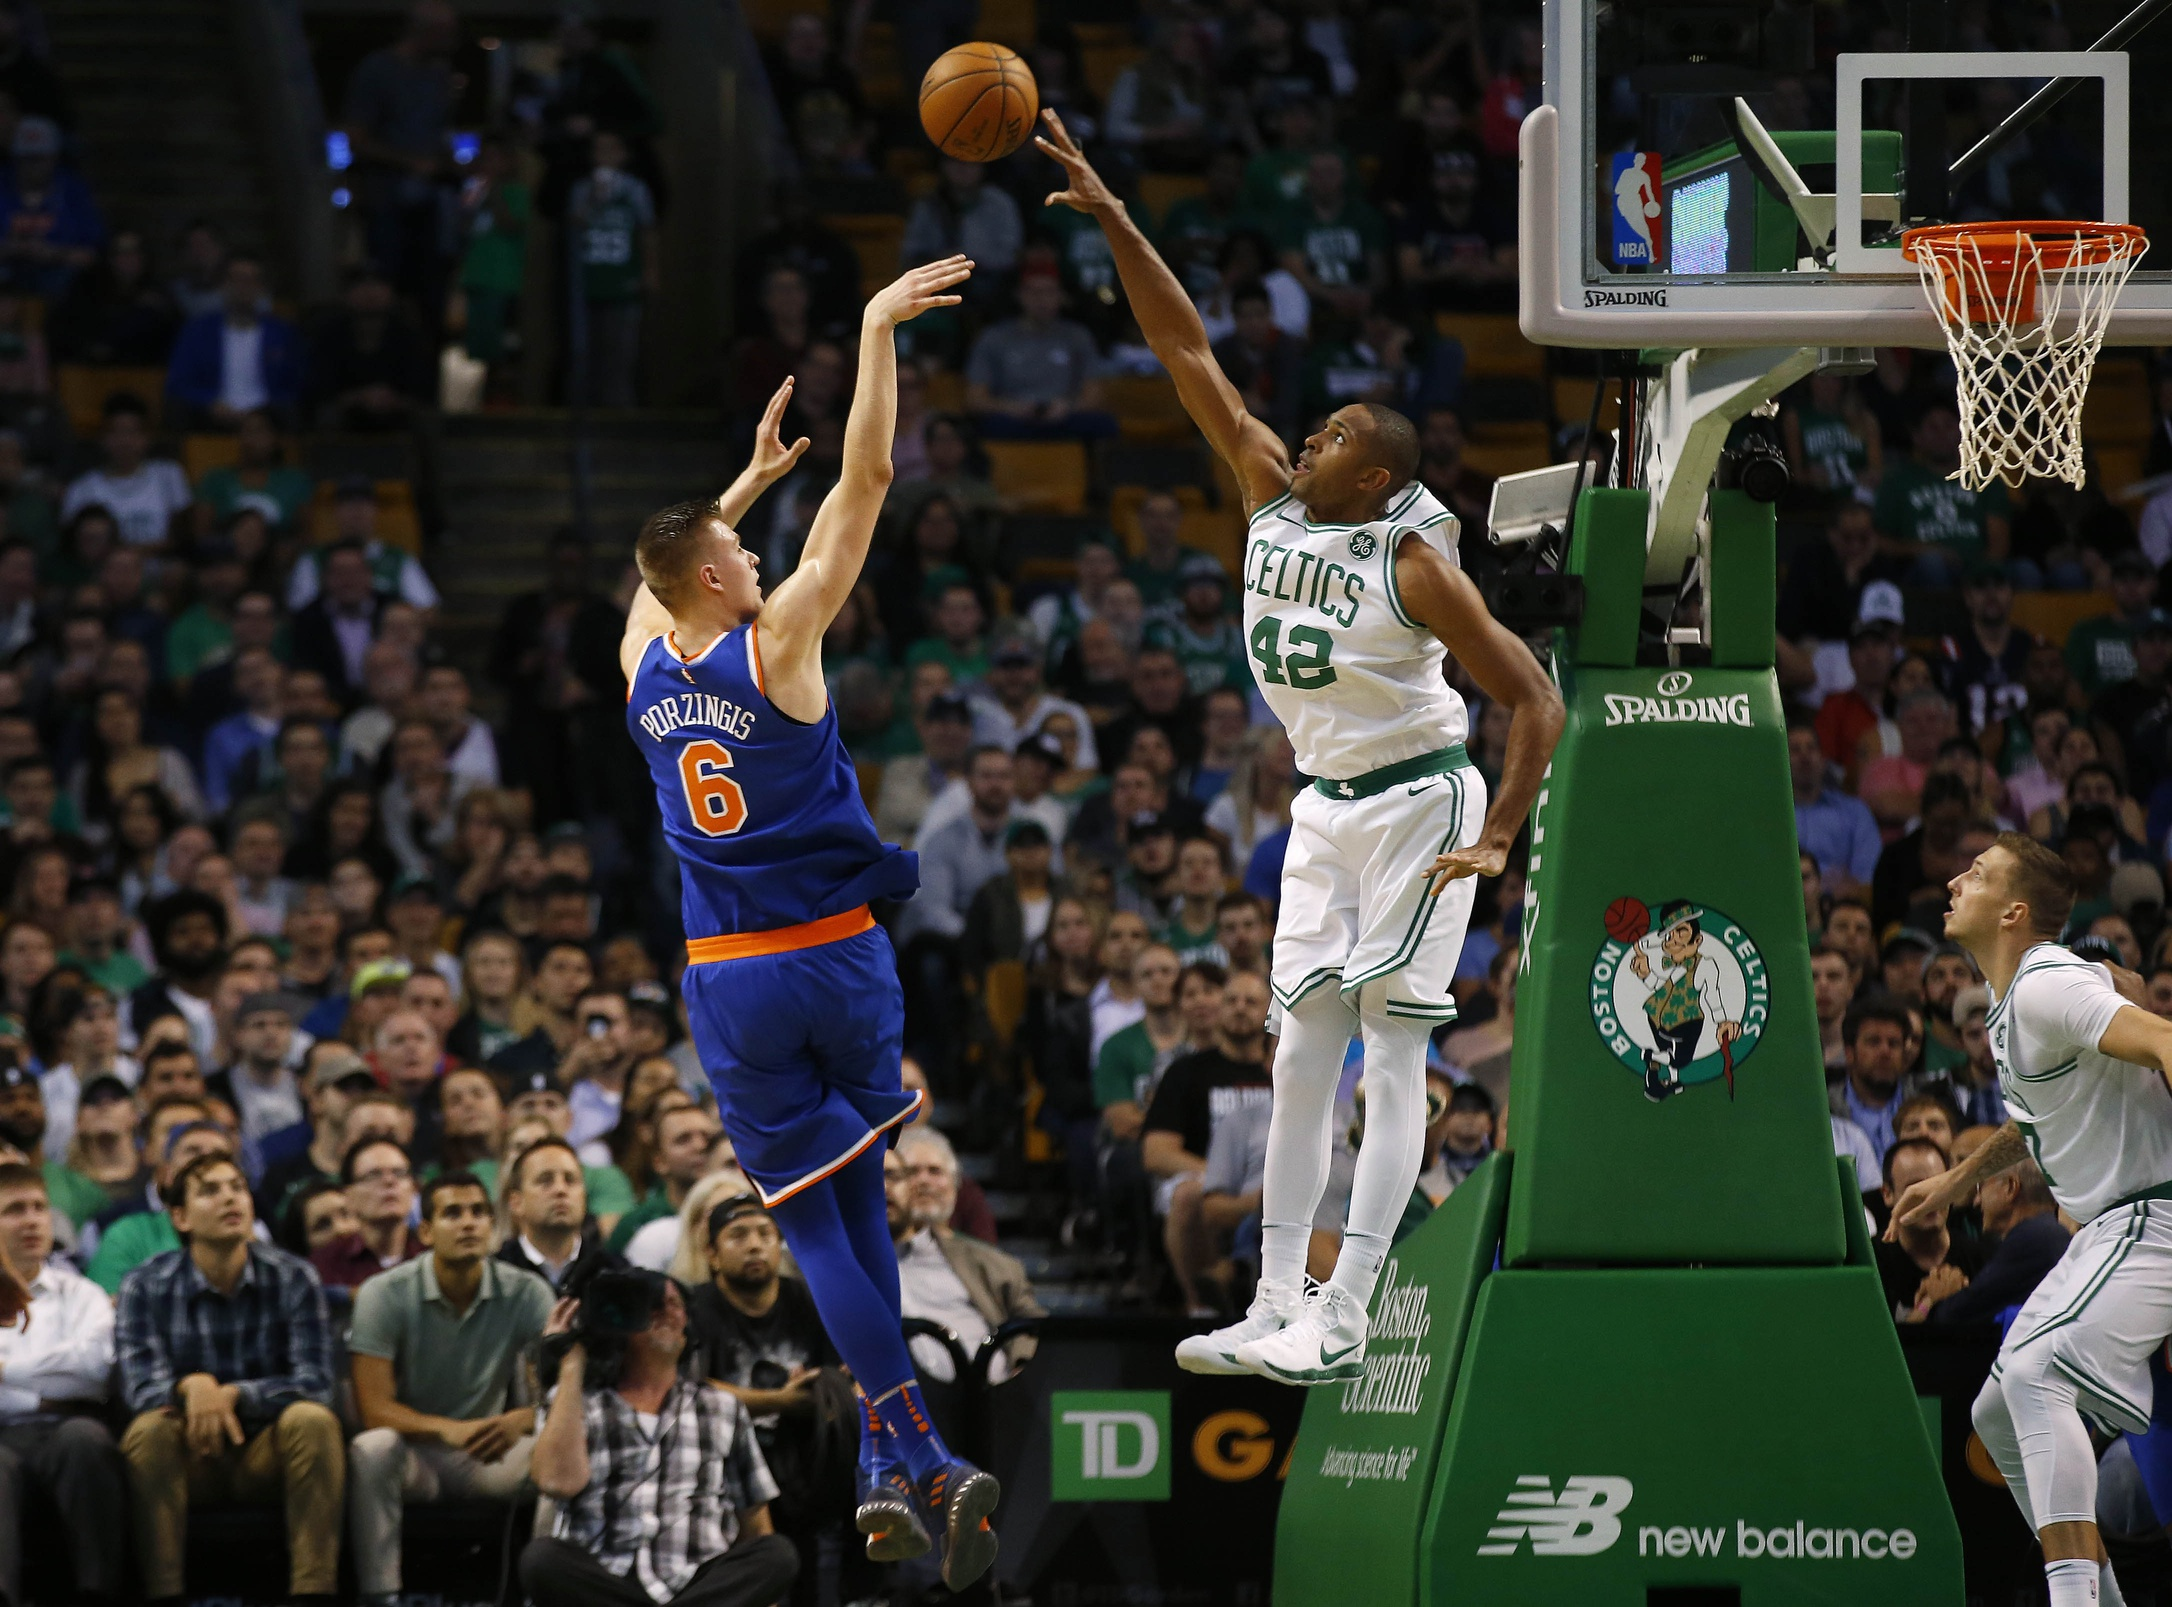 Al Horford makes All-Defense team (and he's the only one)